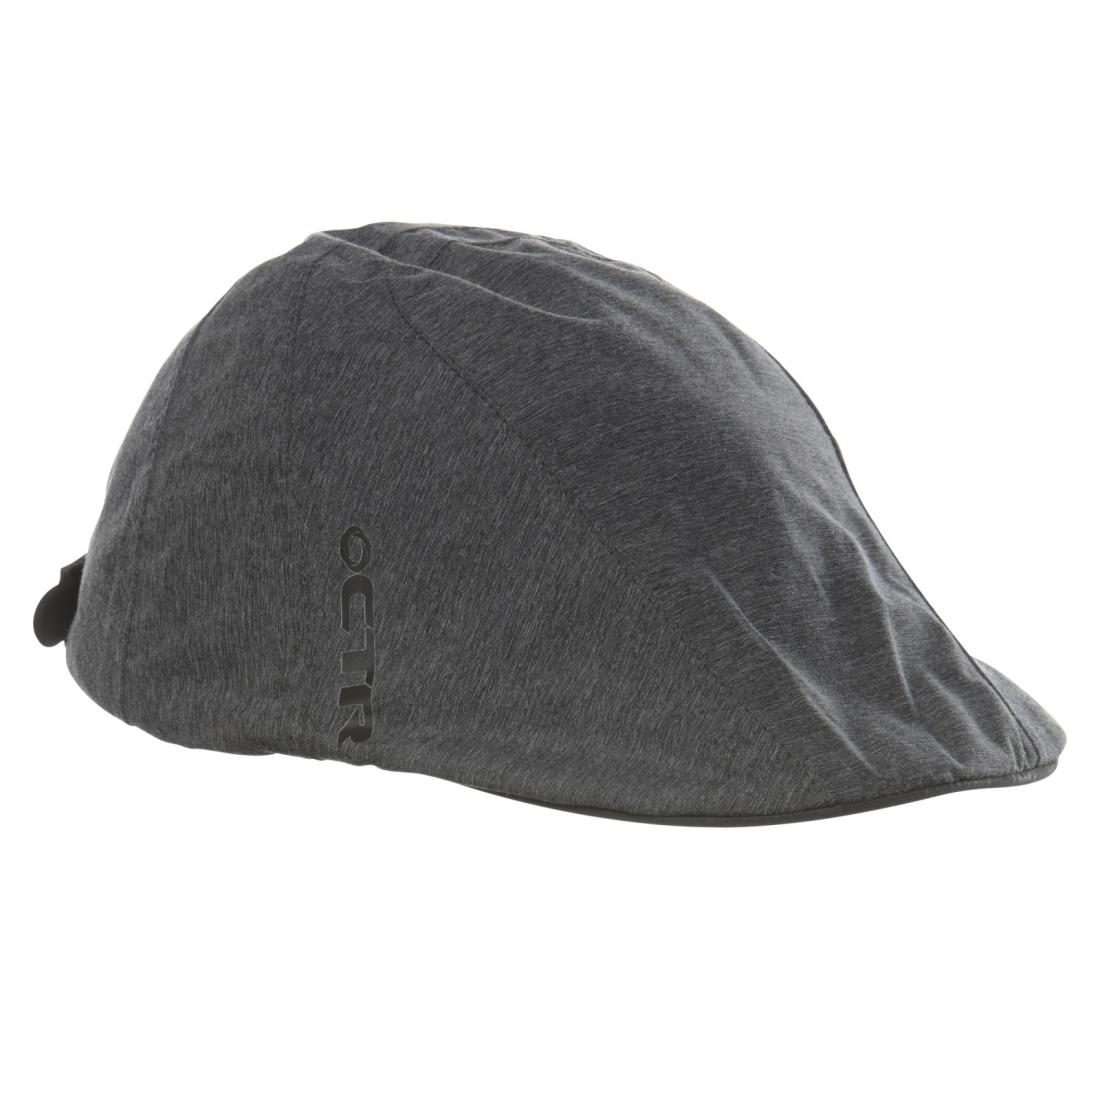 Chaos Кепка Stratus Cabbie Rain Hat (S-M, 405 Charcoal, ,)